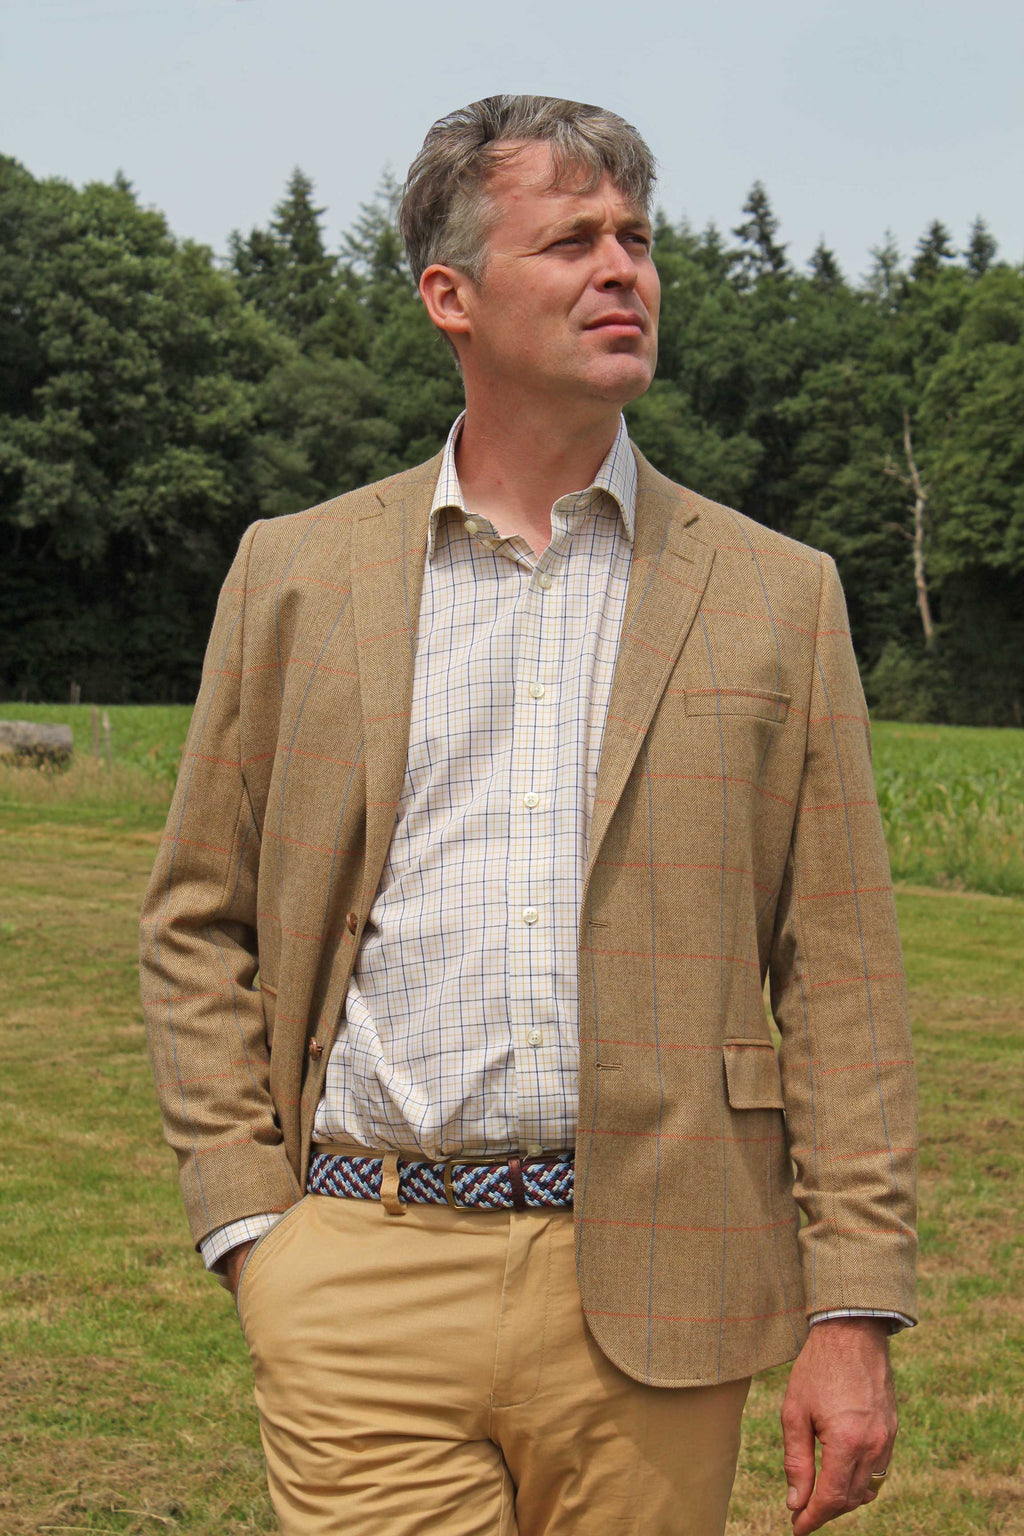 Veste Homme Eté Tweed Moutarde Veste